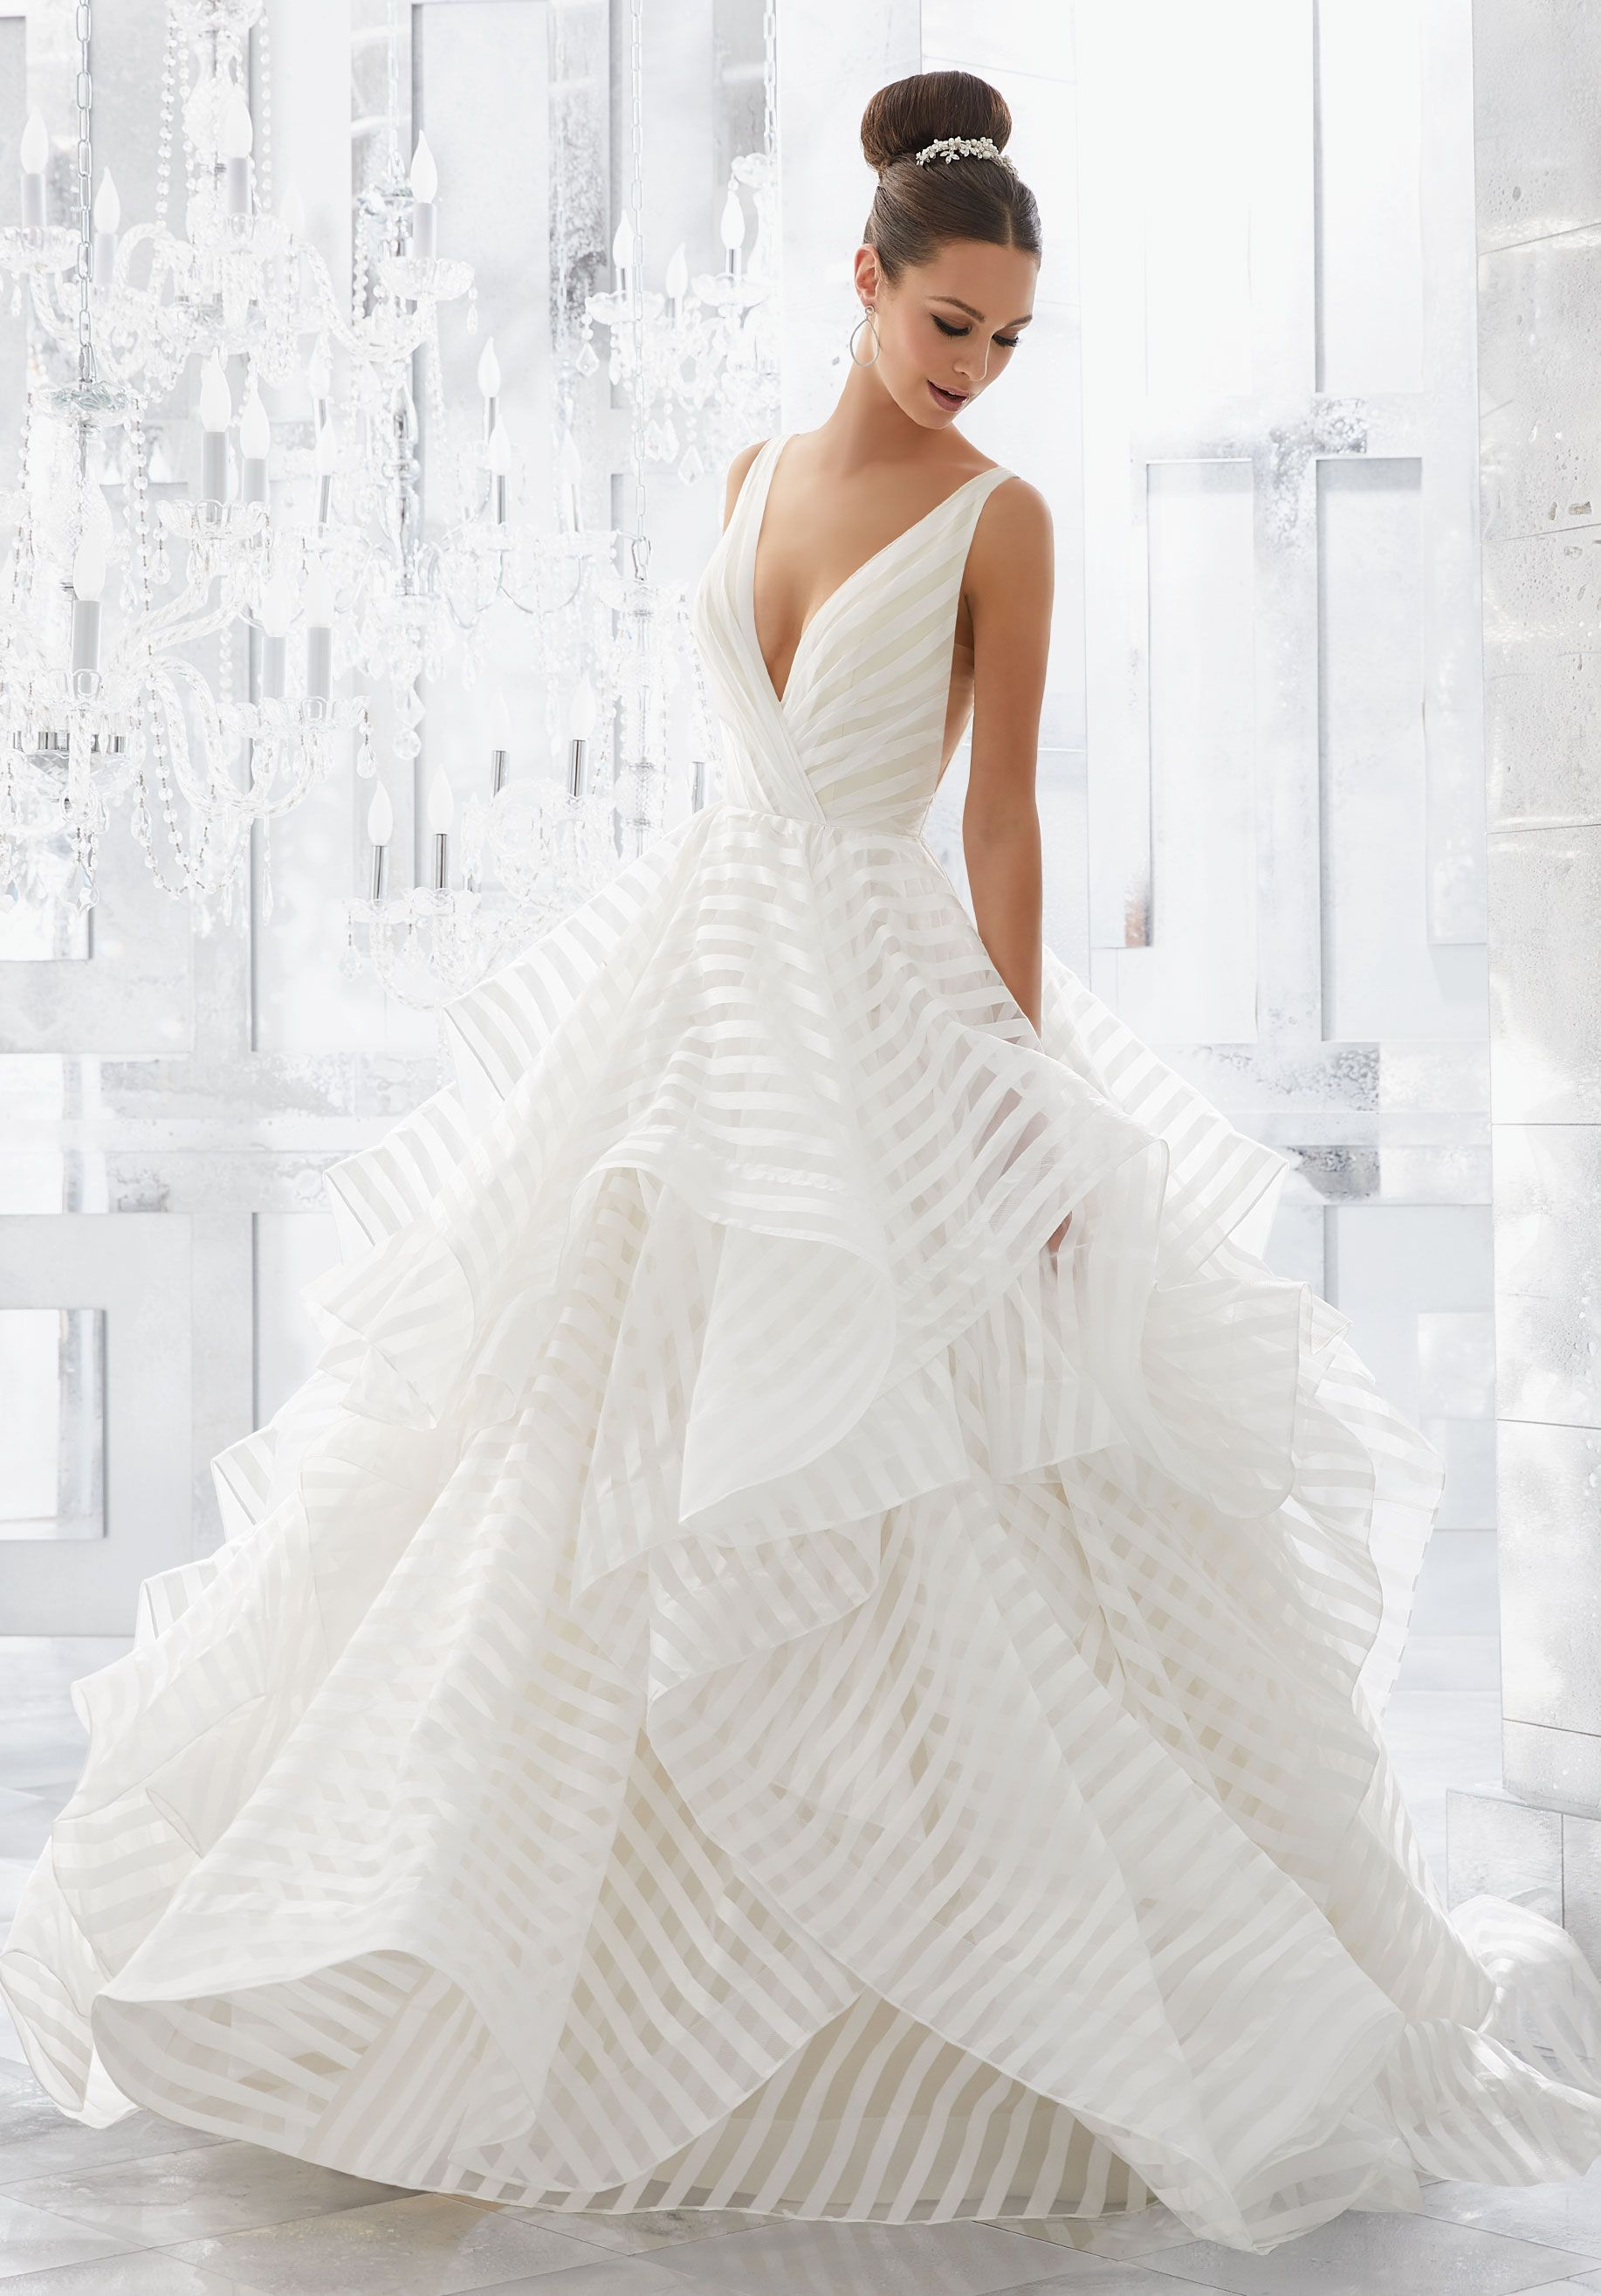 Striped Gown Soft And Floating Fabric With Ruffles Mori Lee Milly